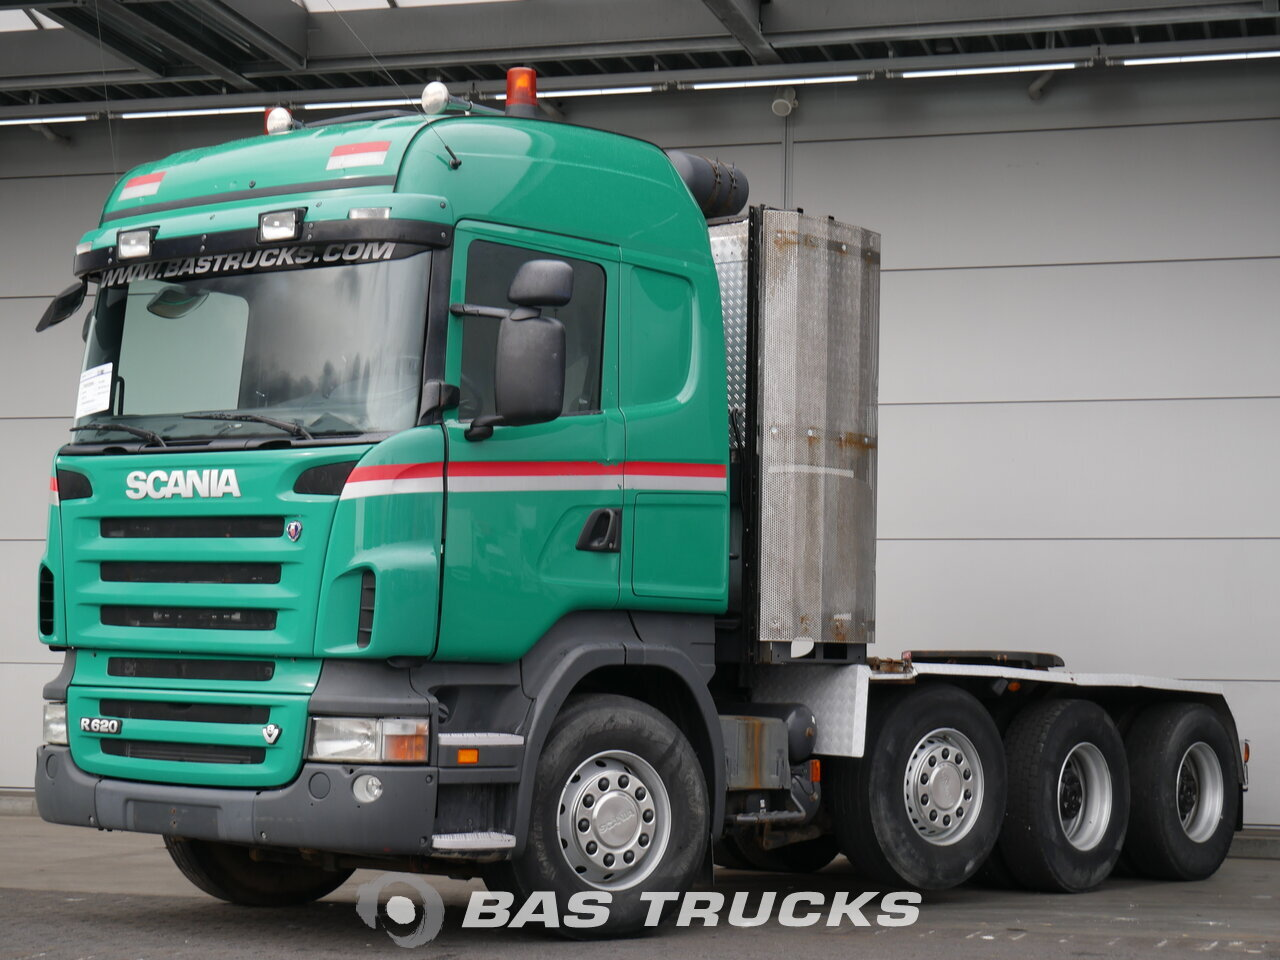 For sale at BAS Trucks: Scania R620 8X4 03/2008